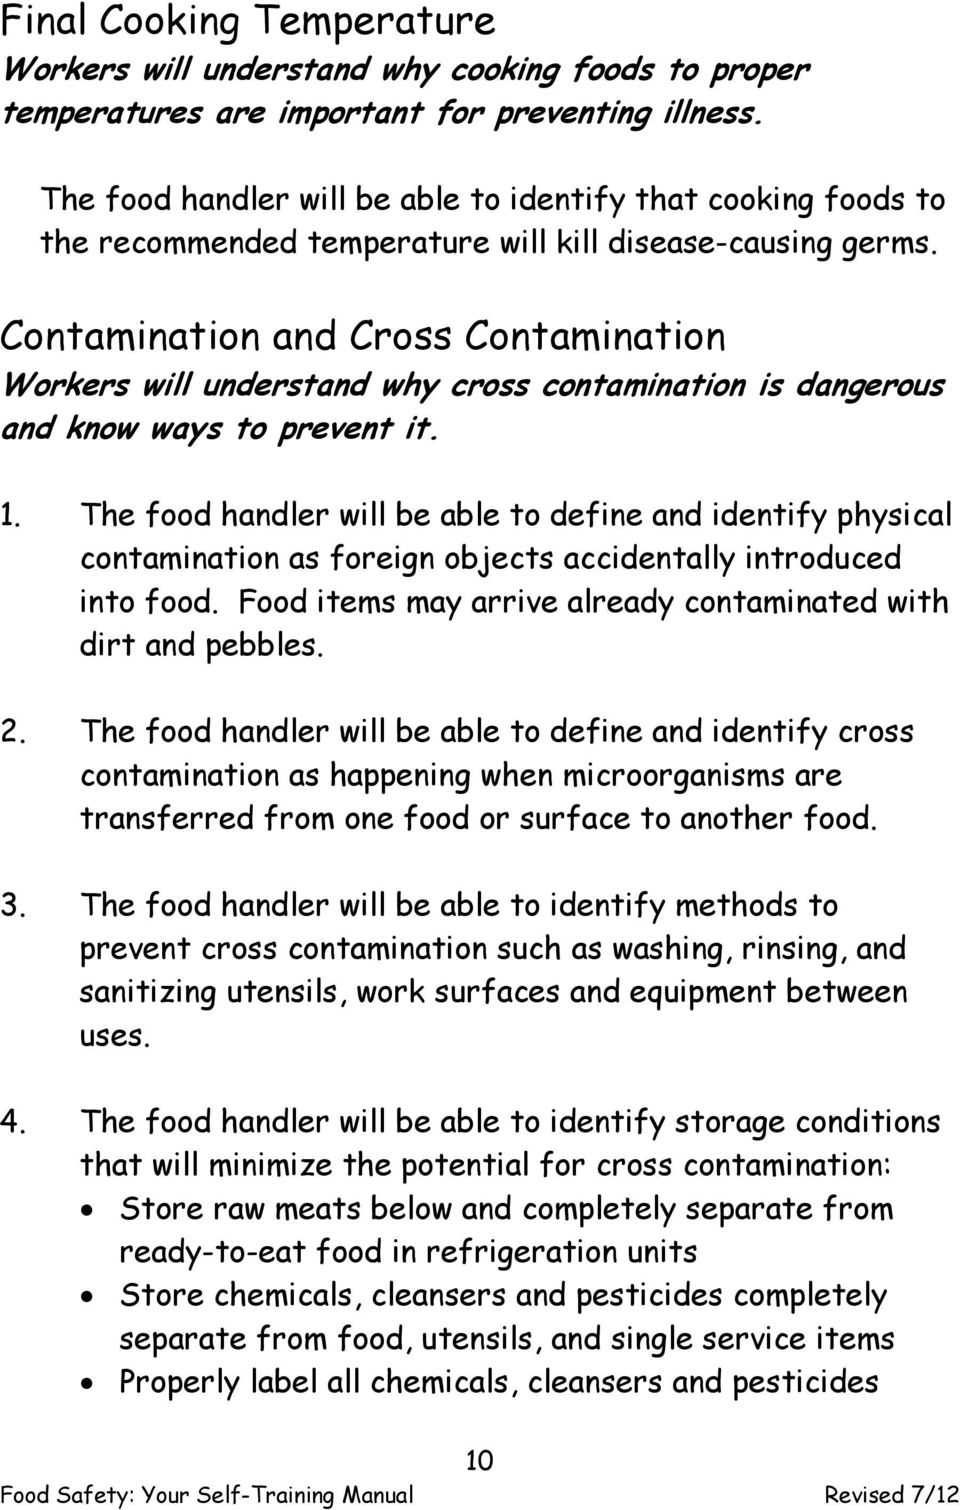 Contamination and Cross Contamination Workers will understand why cross contamination is dangerous and know ways to prevent it. 1.